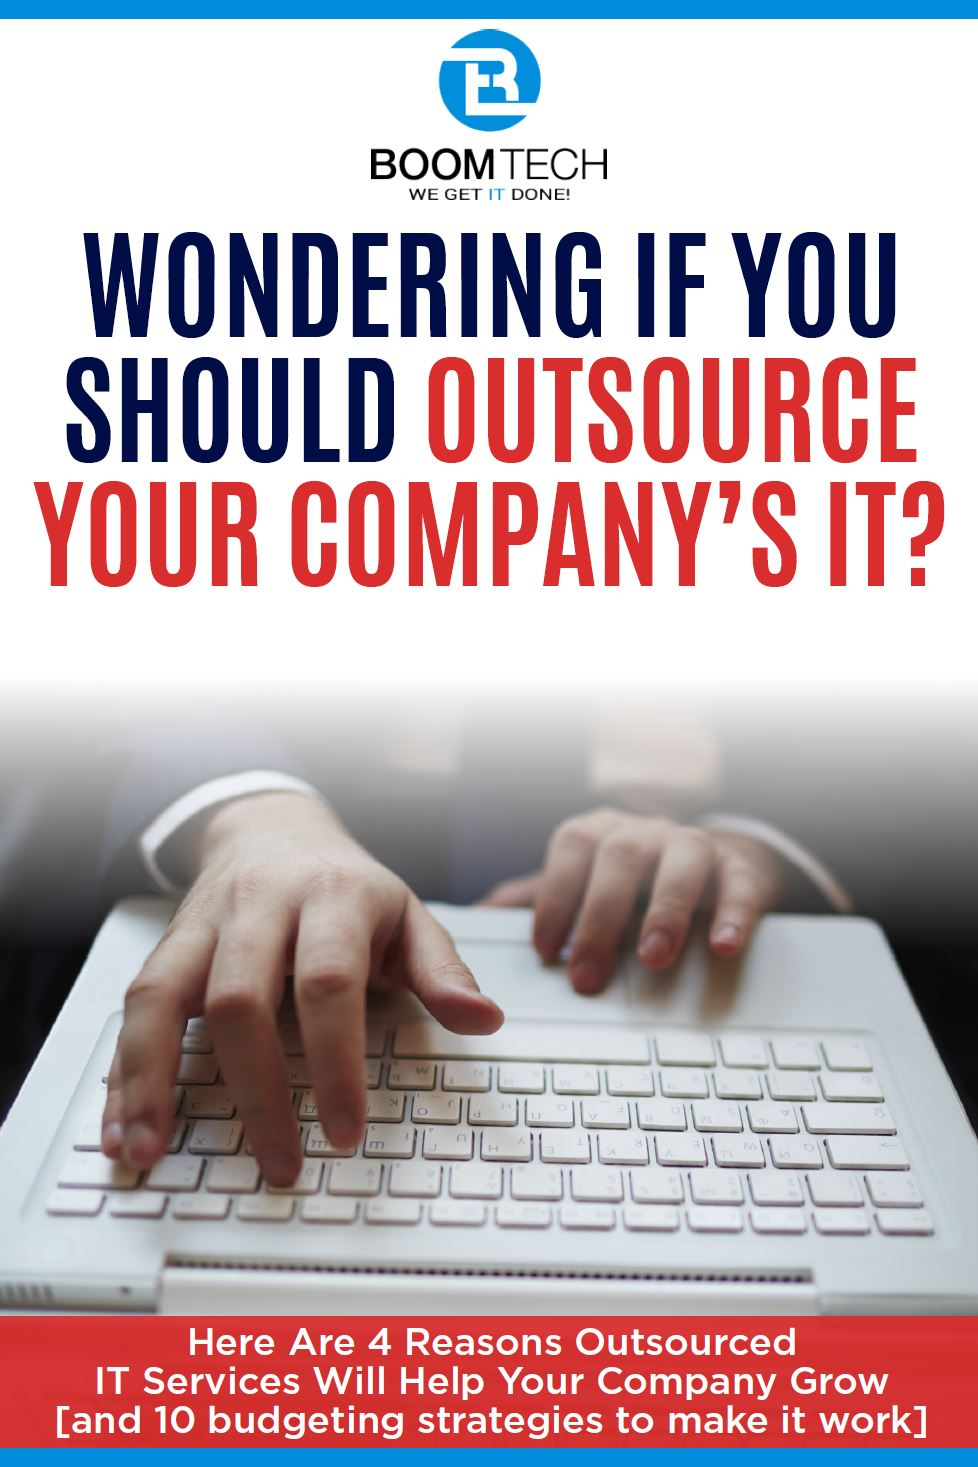 4 reasons to outsoure your company's IT